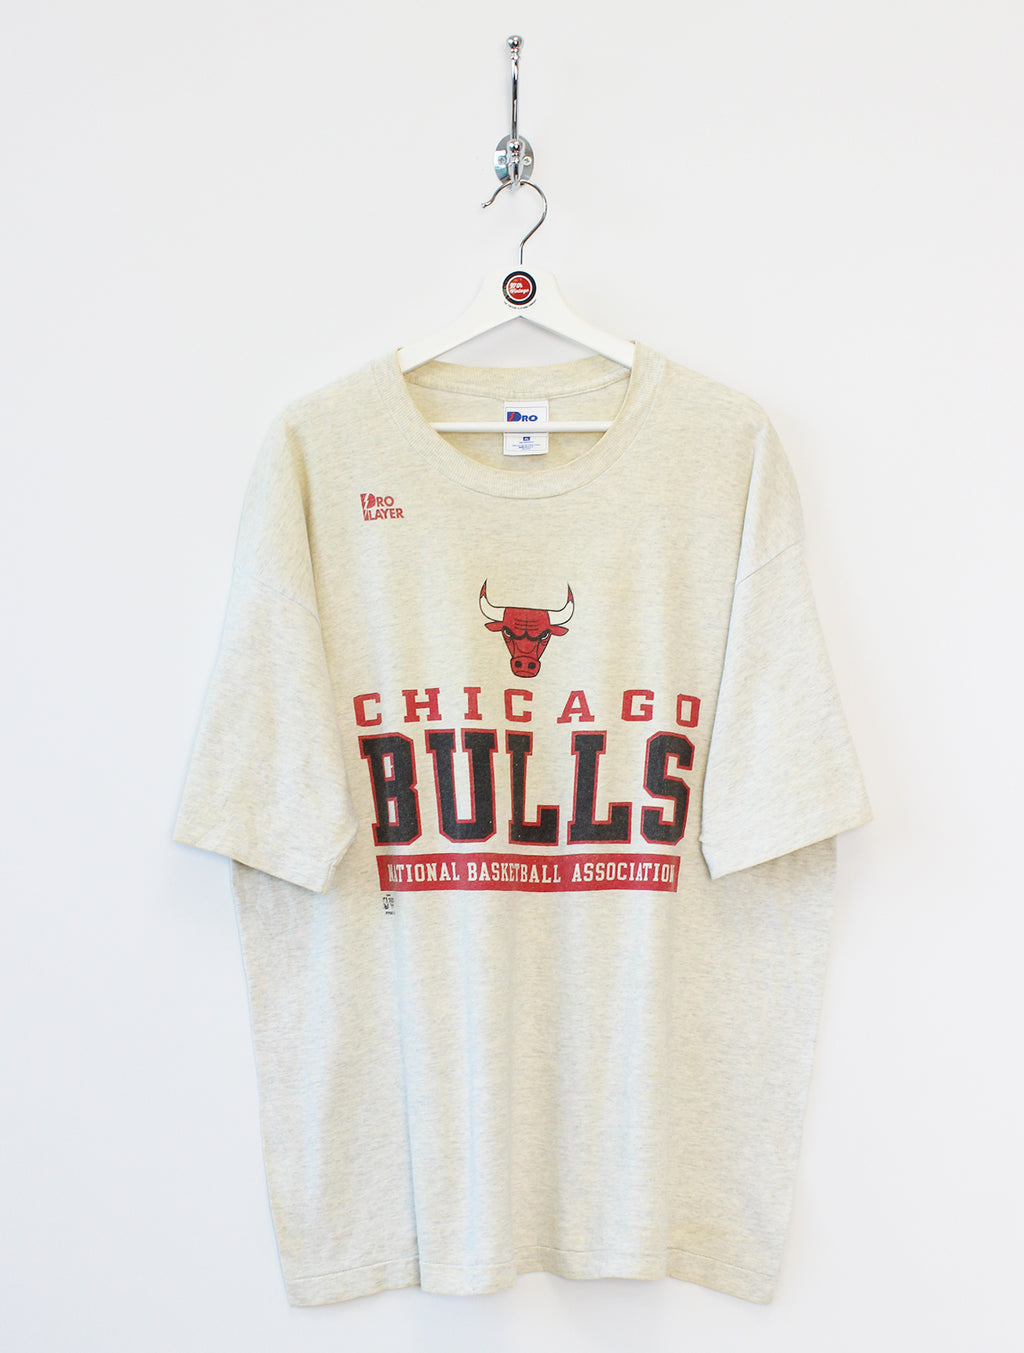 Chicago Bulls T-Shirt (XXL)